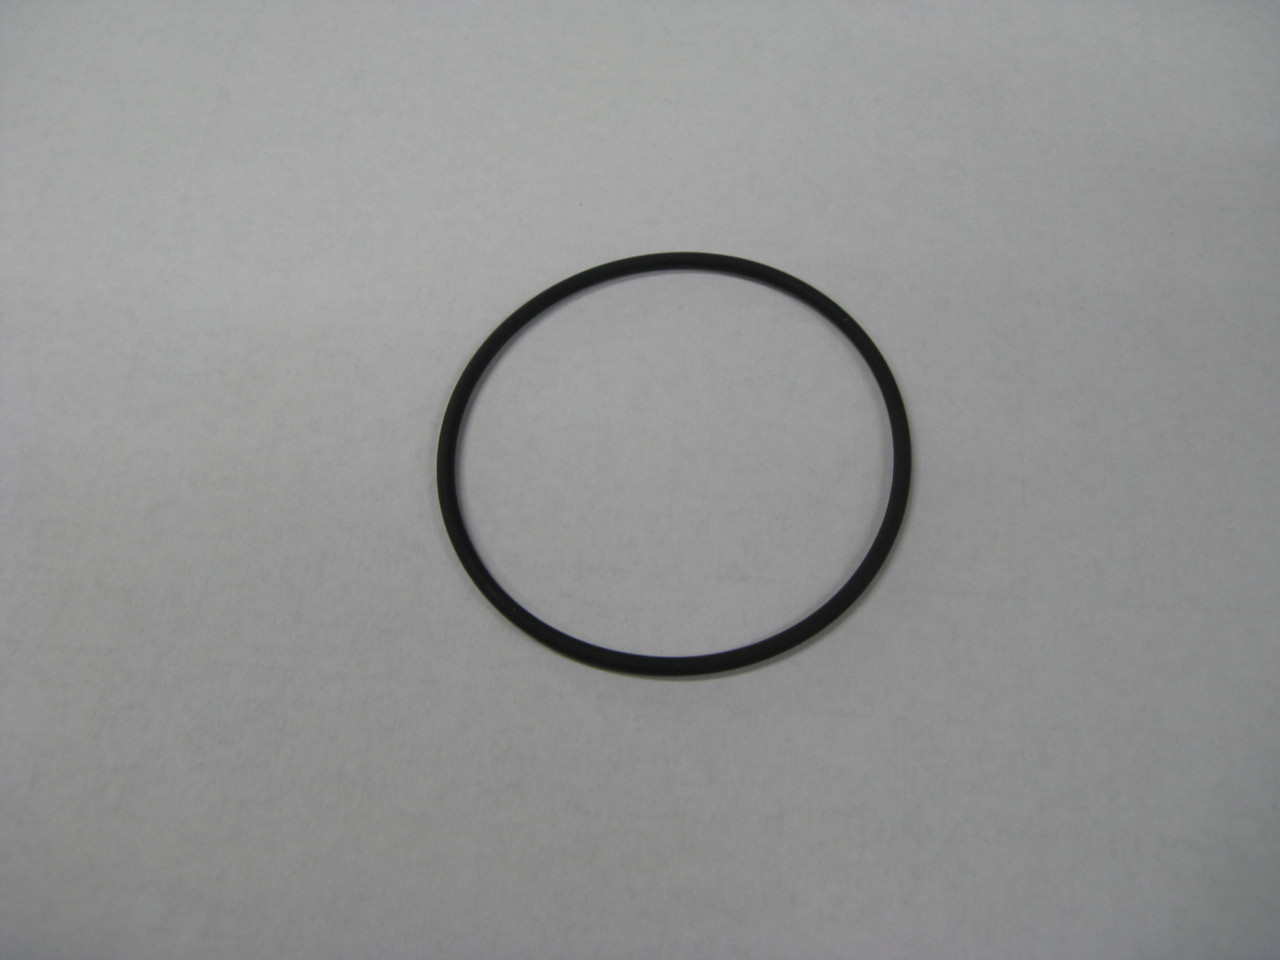 830277 Balcrank O-ring for Oil Drain